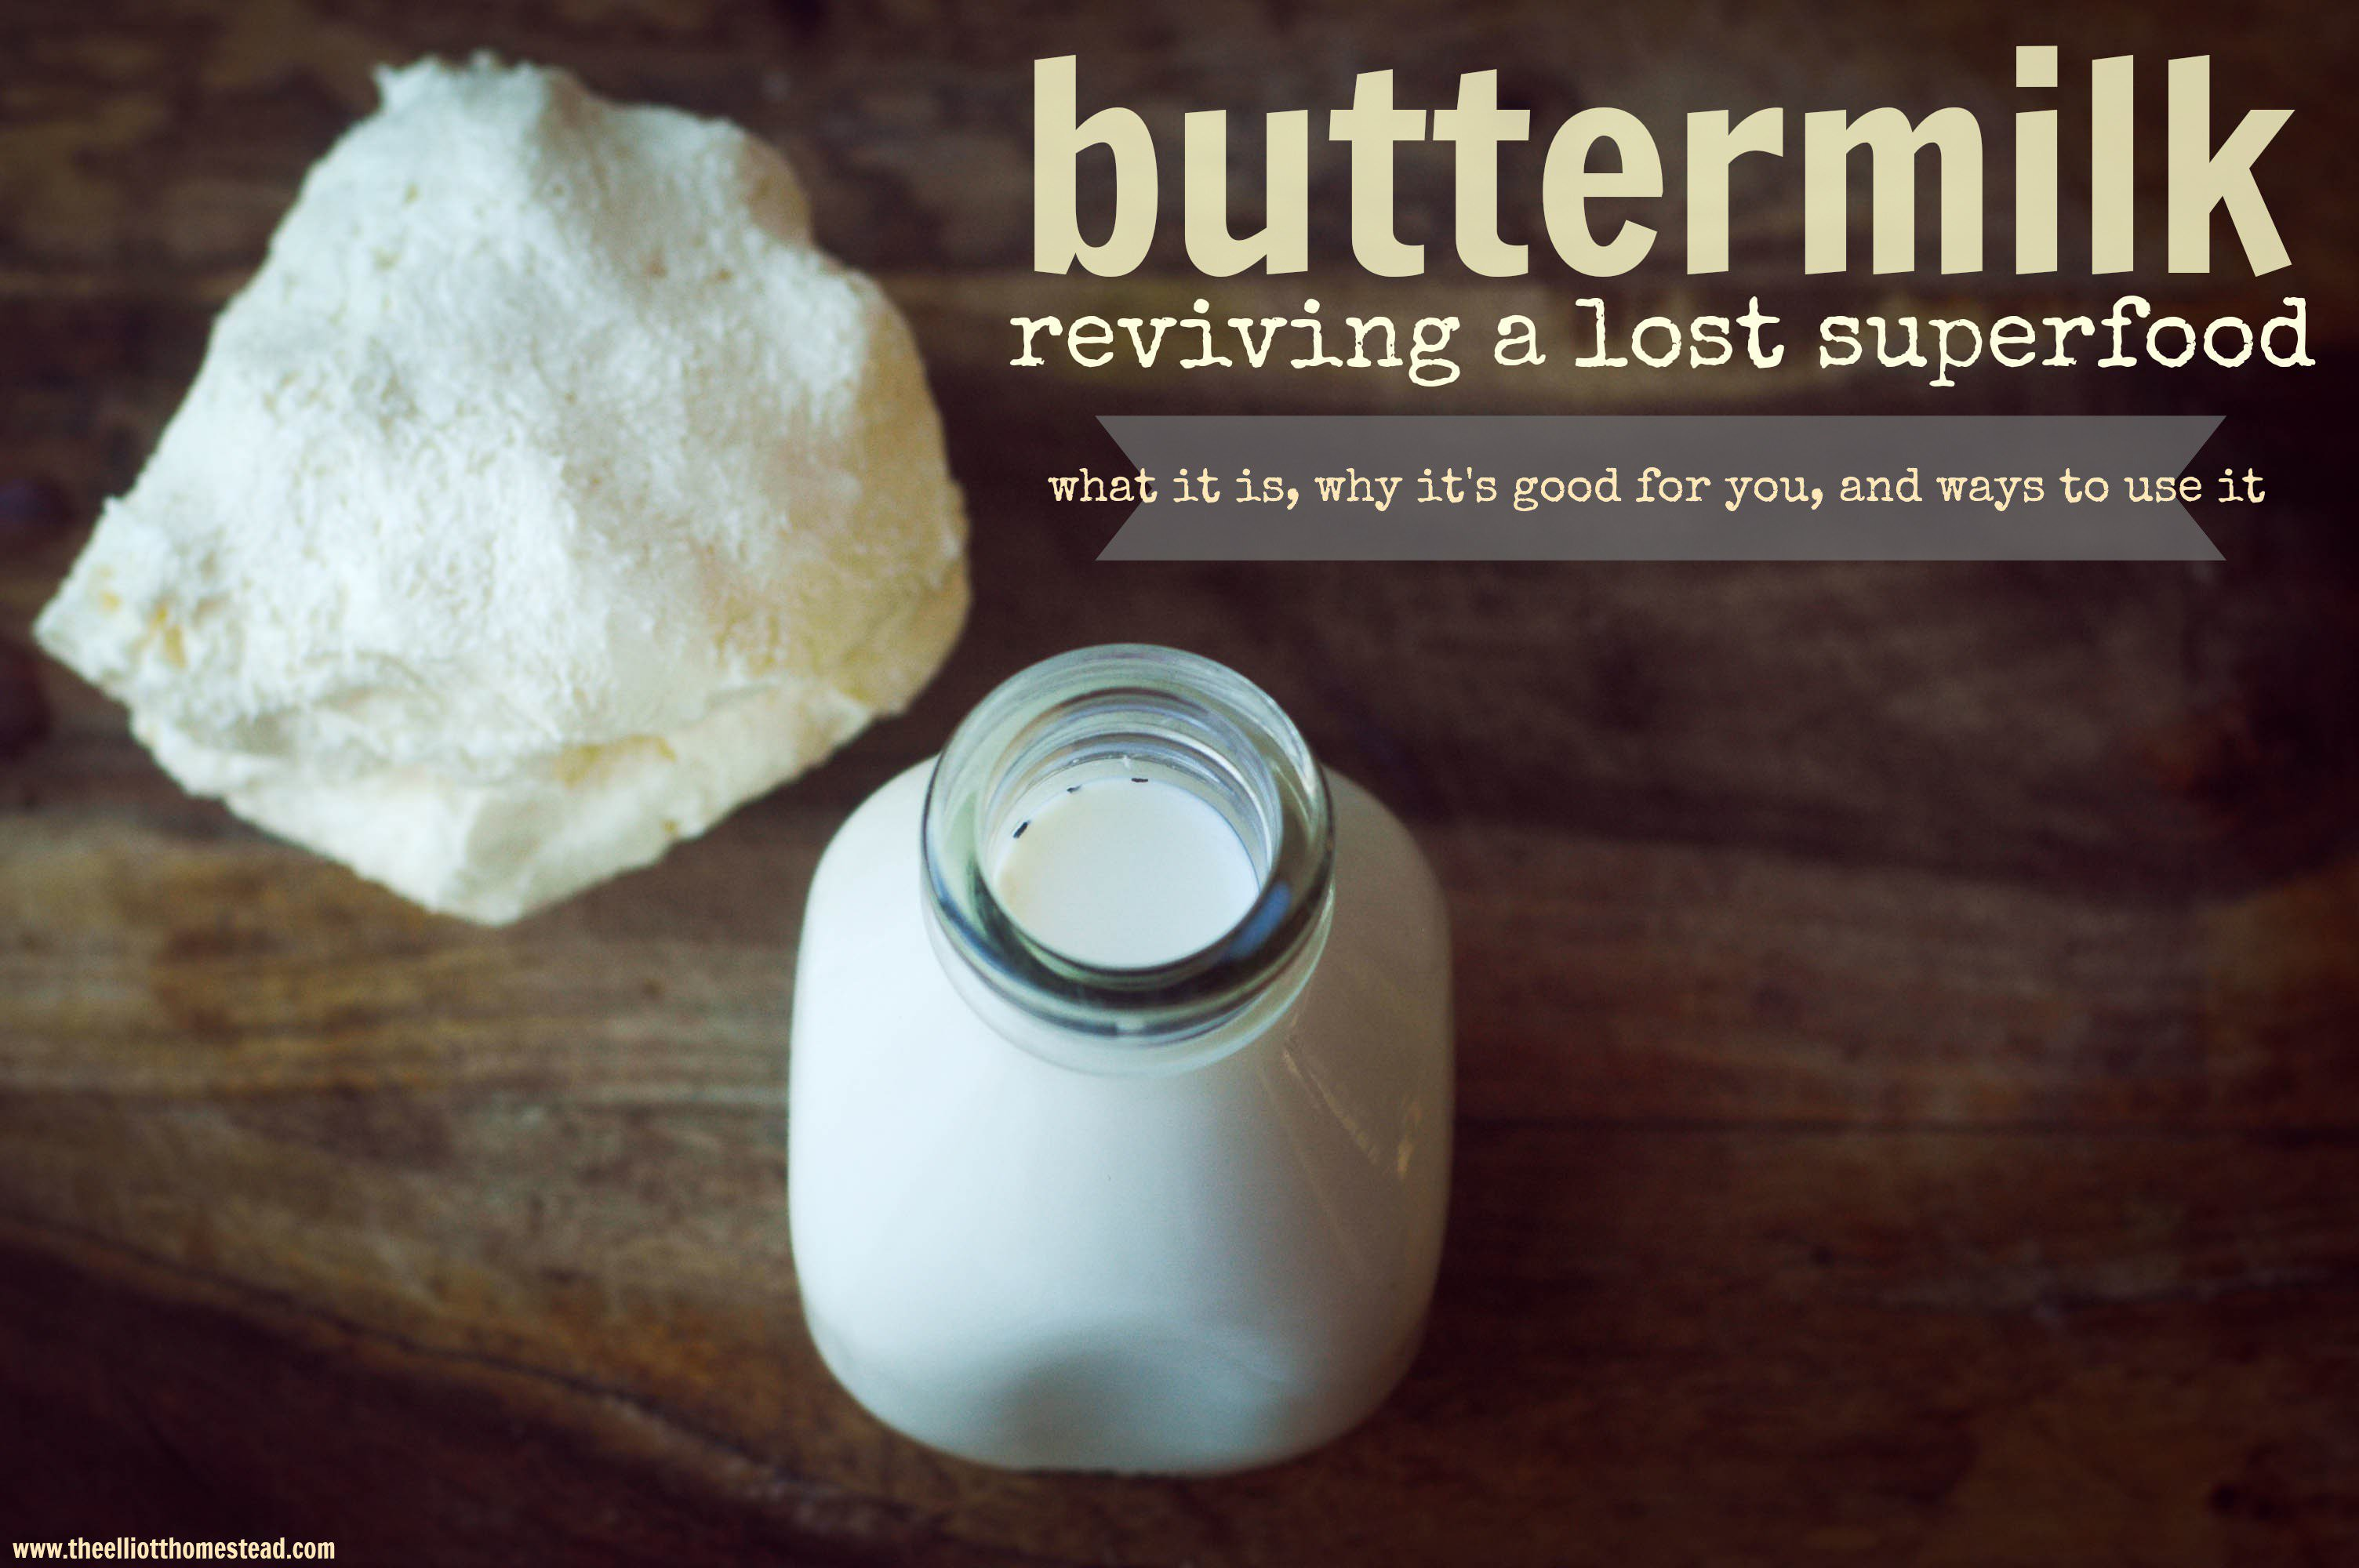 What stores sell buttermilk?